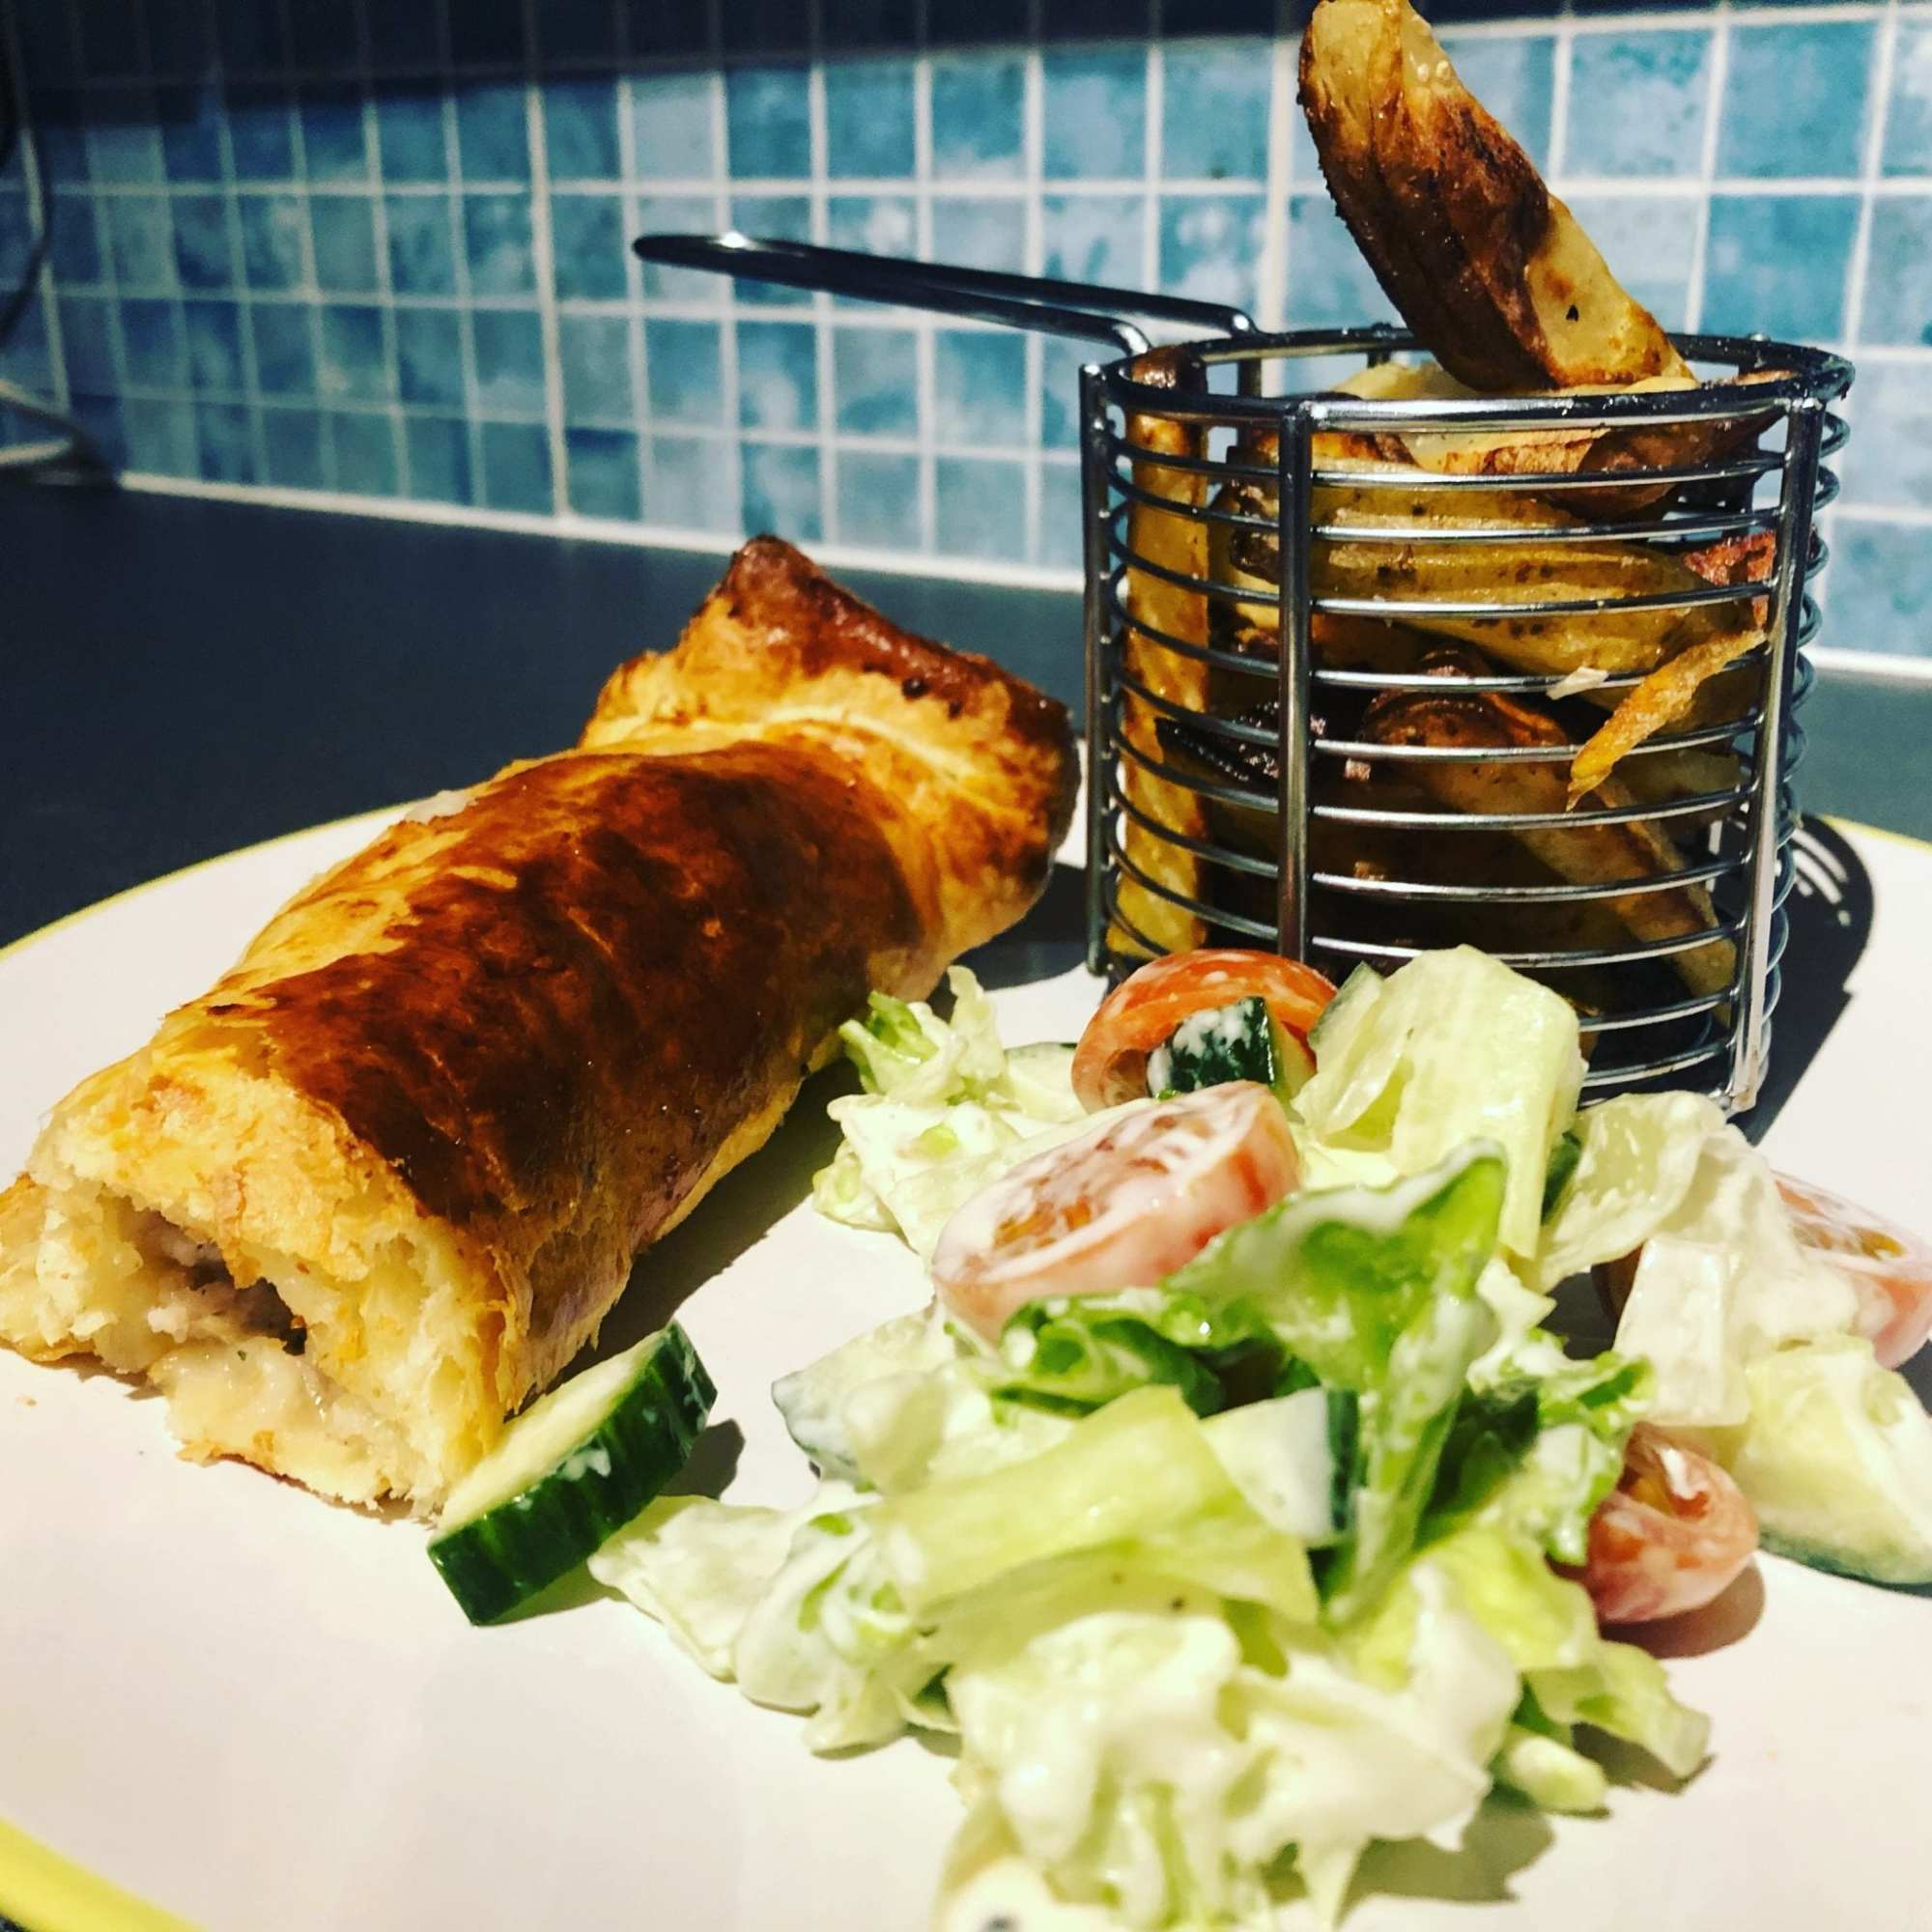 Homemade sausage roll served with potato wedges and side salad